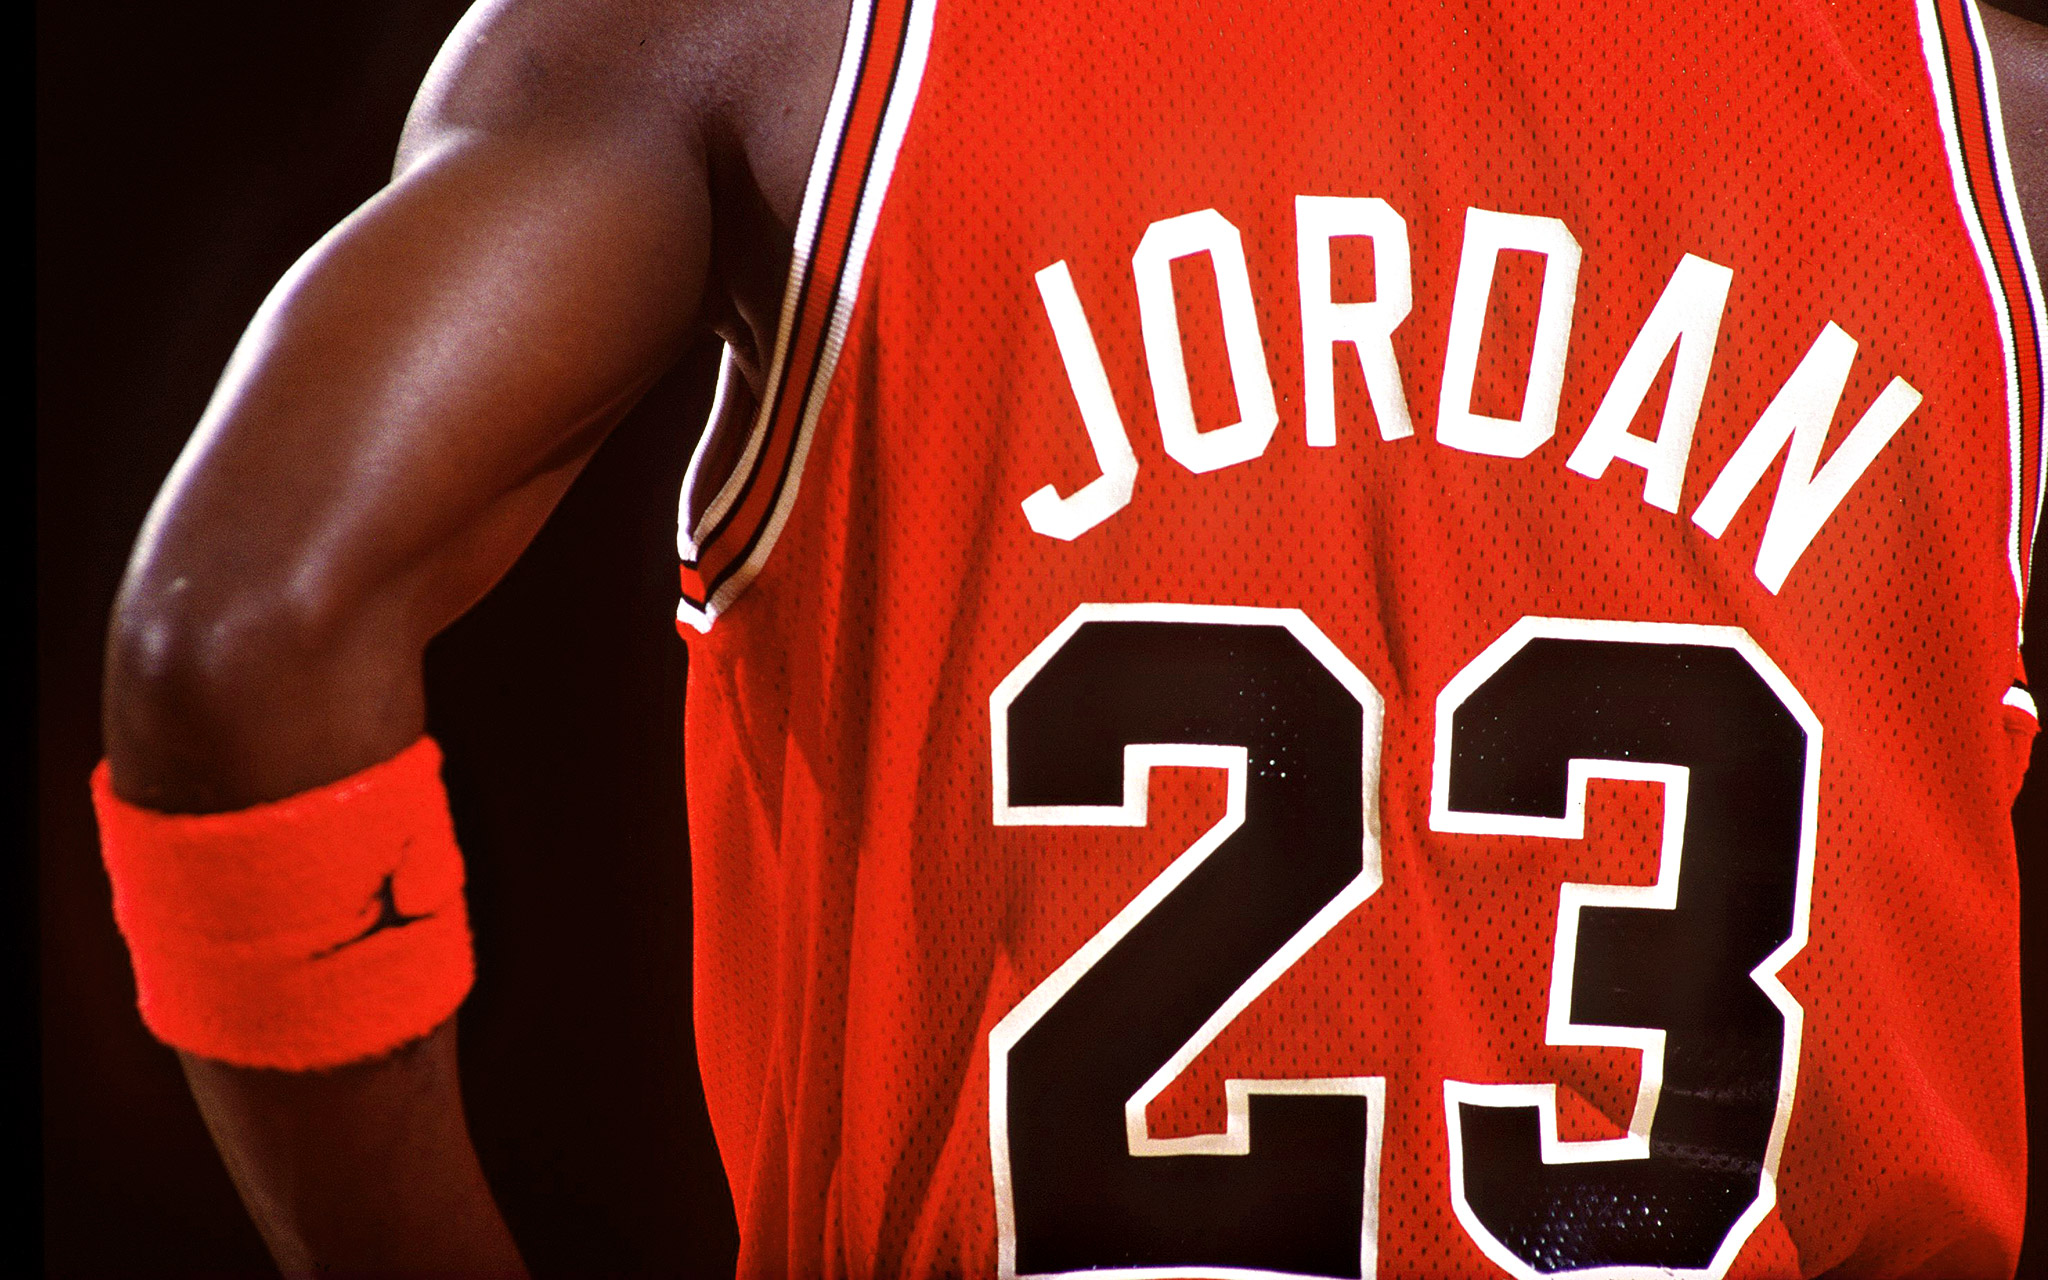 REPORT: Michael Jordan made more money in 2014 than during entire playing career…